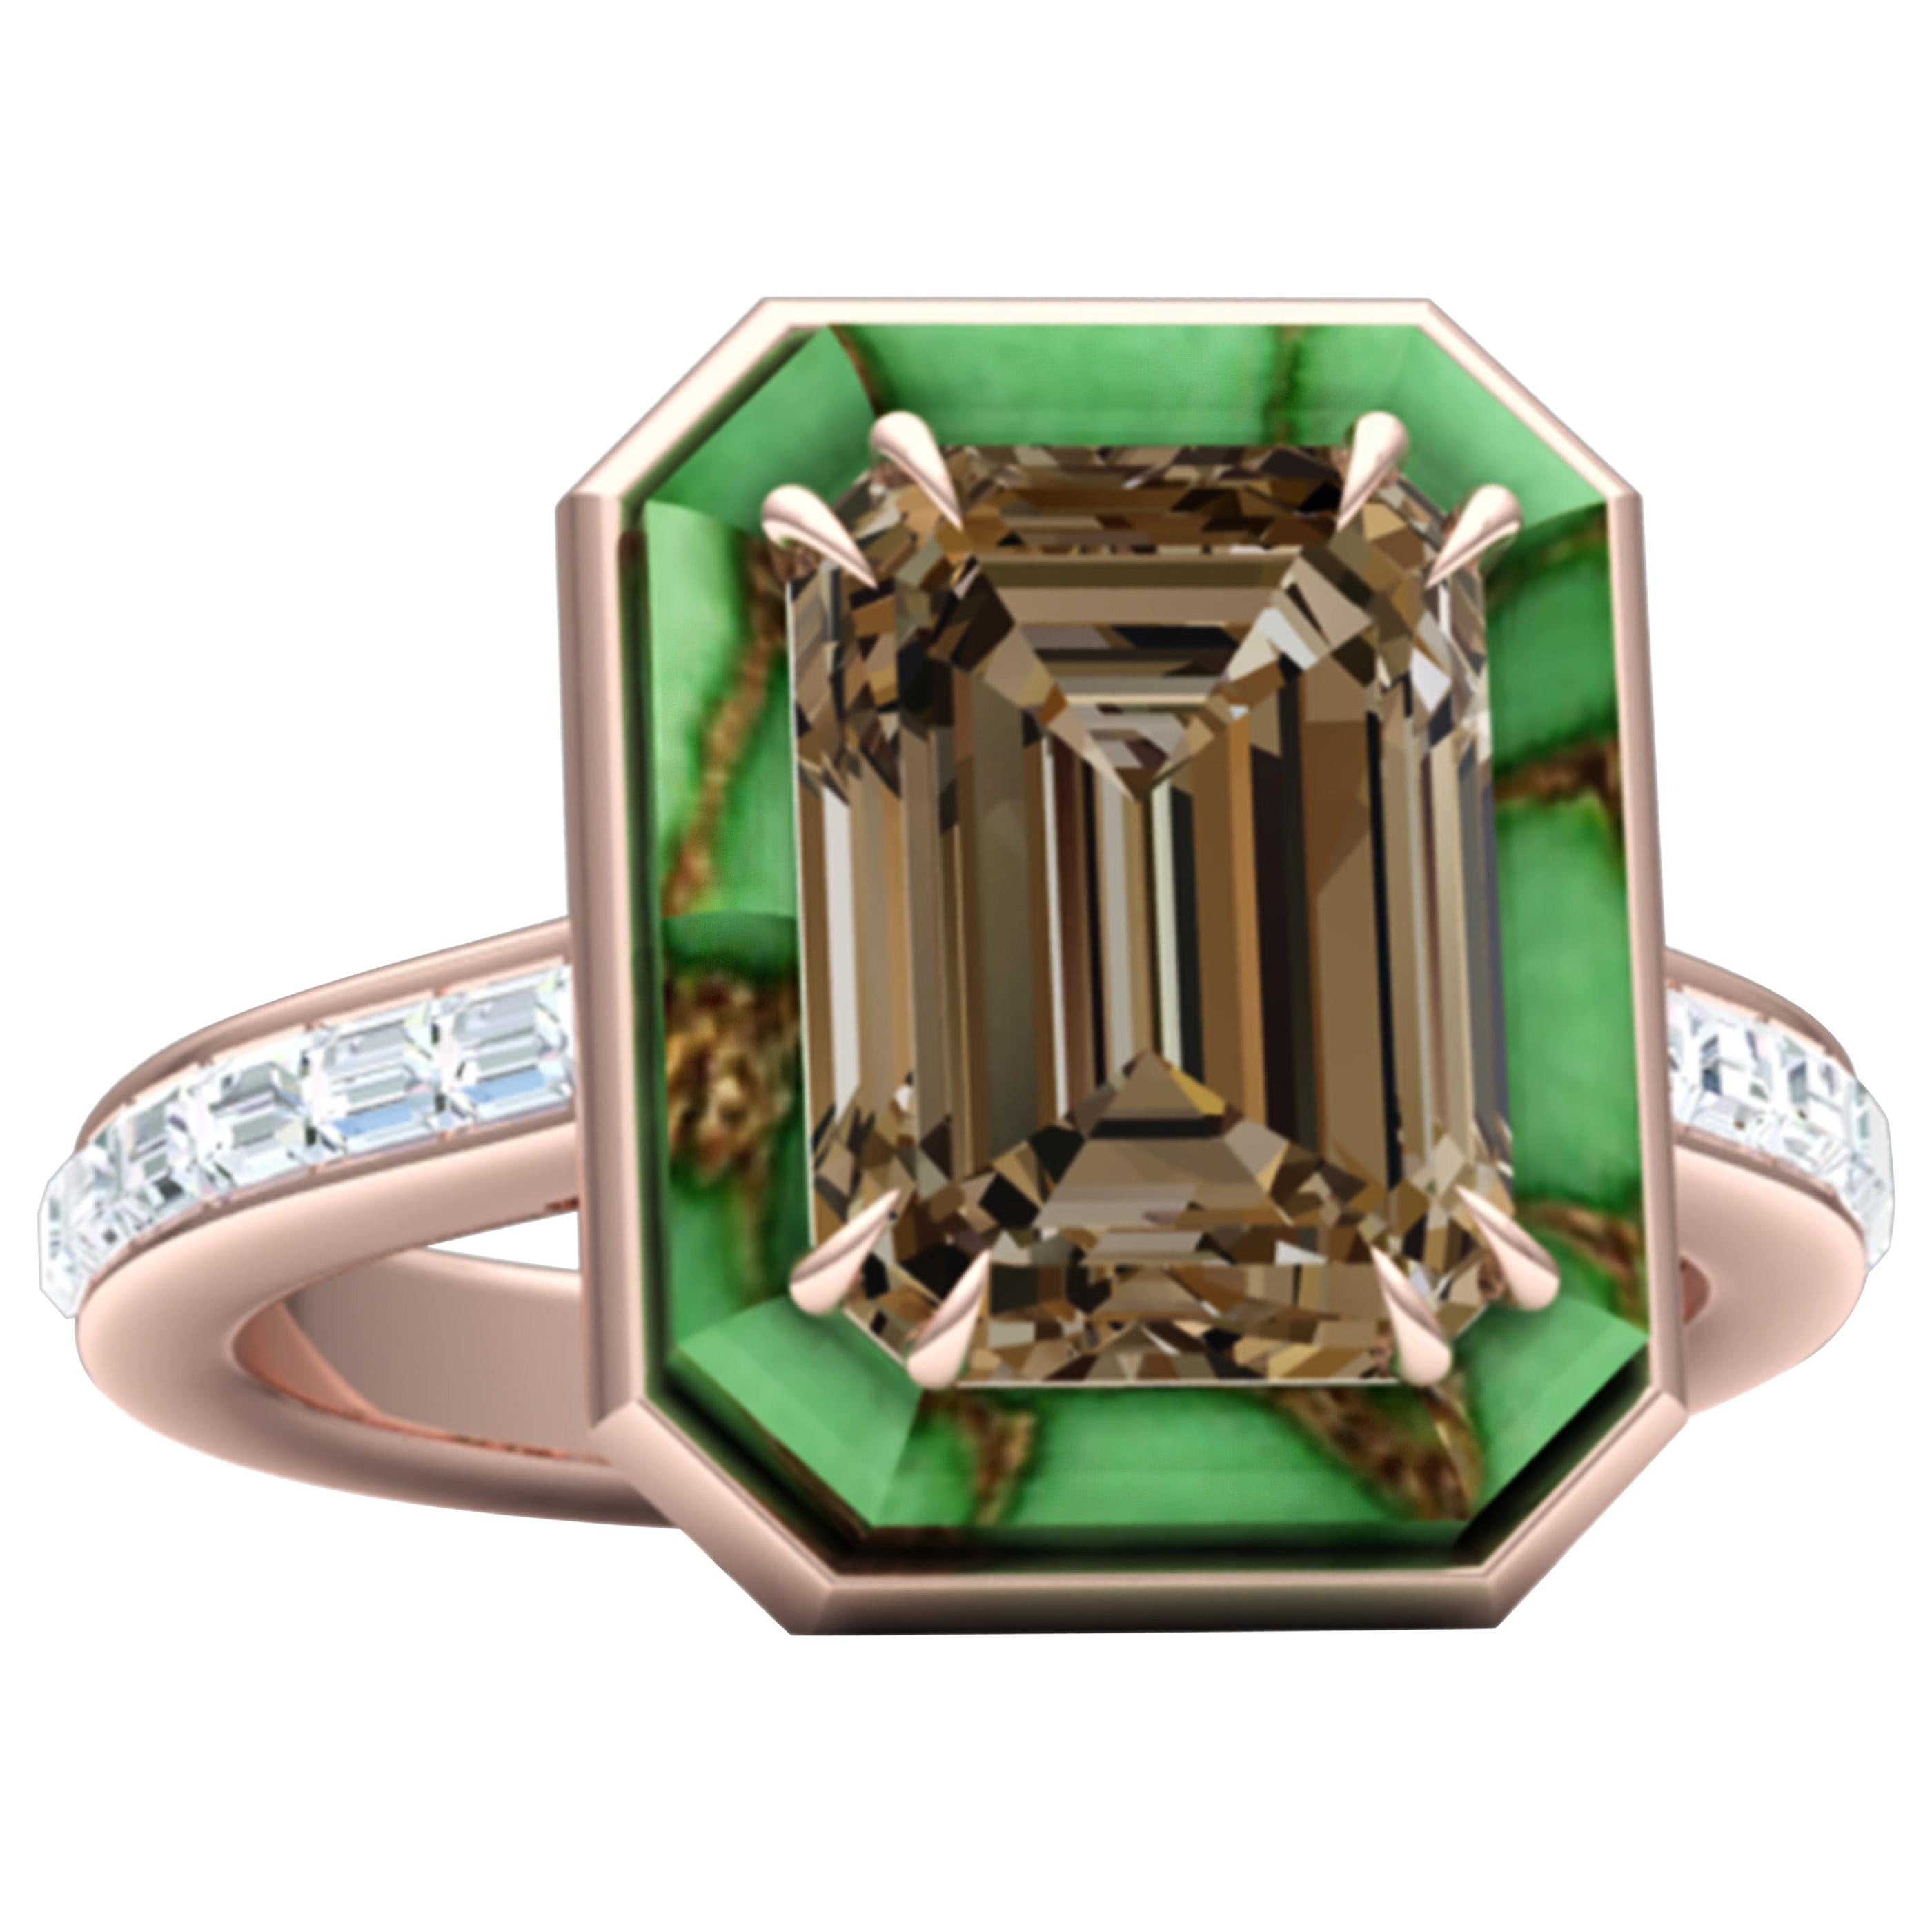 5 Carat Brown Cognac Sapphire Turquoise and Diamond Cocktail Ring